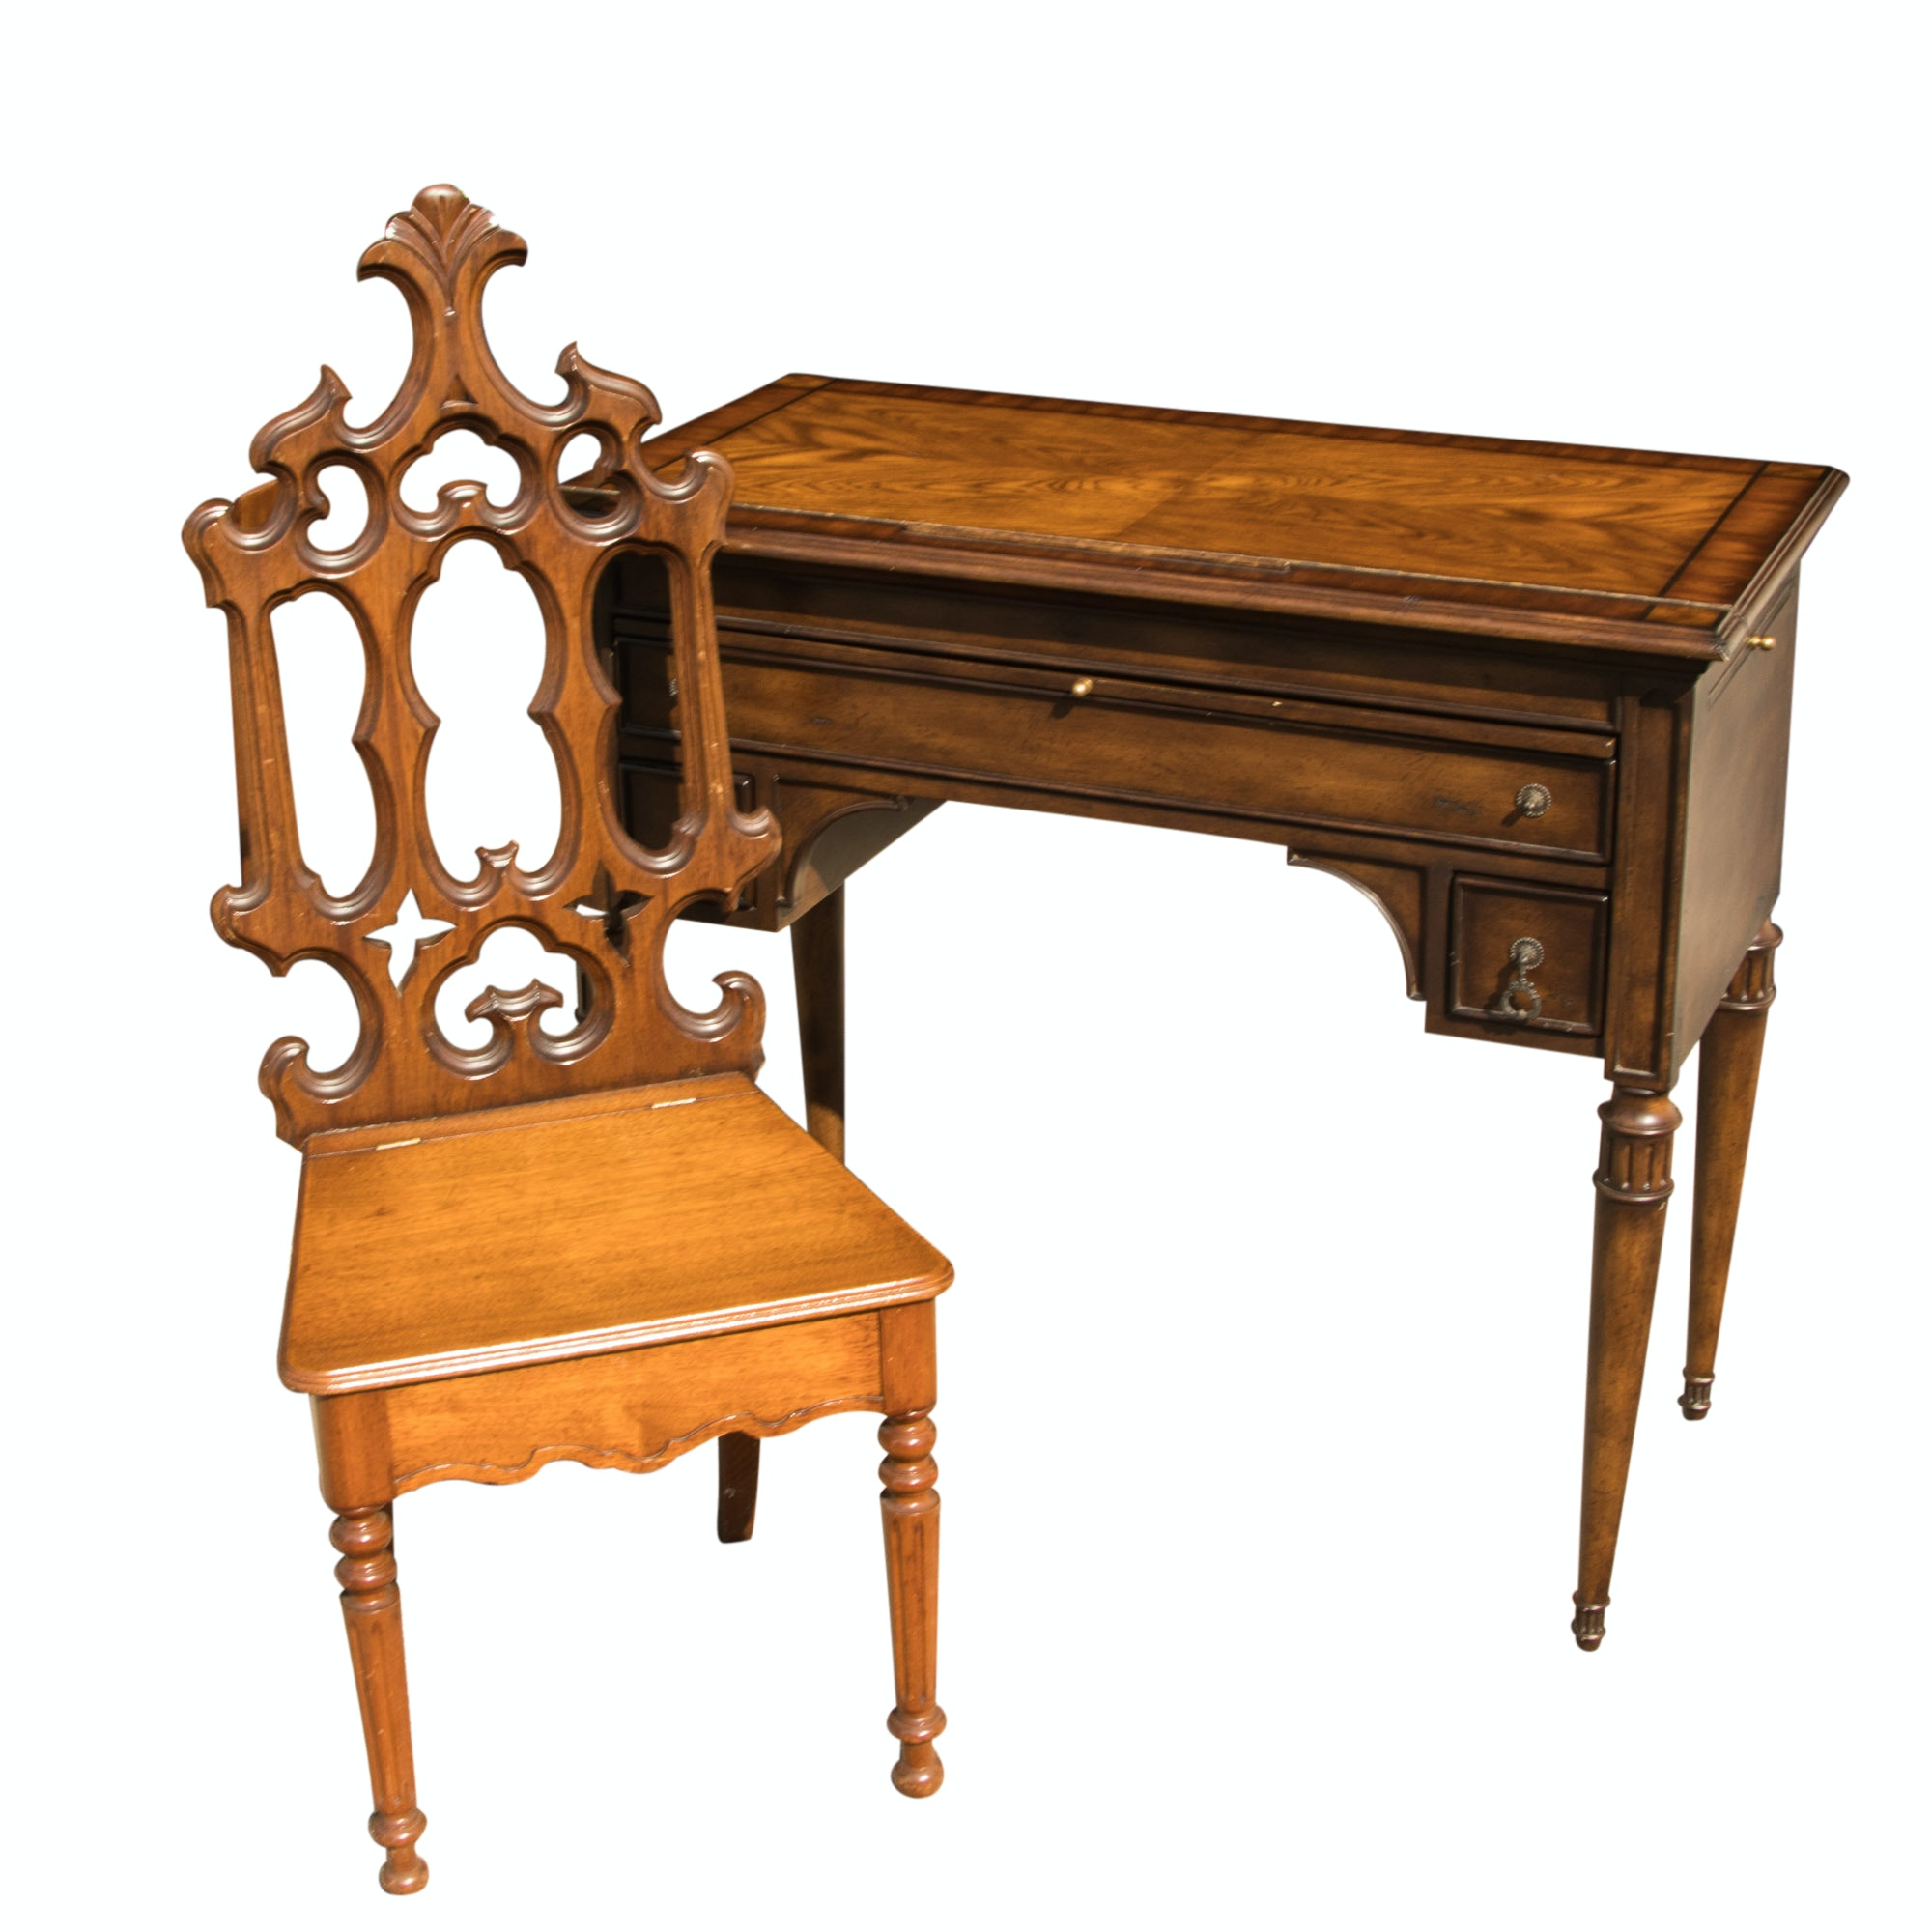 Vintage Neoclassical Style Drawing Desk and Chair